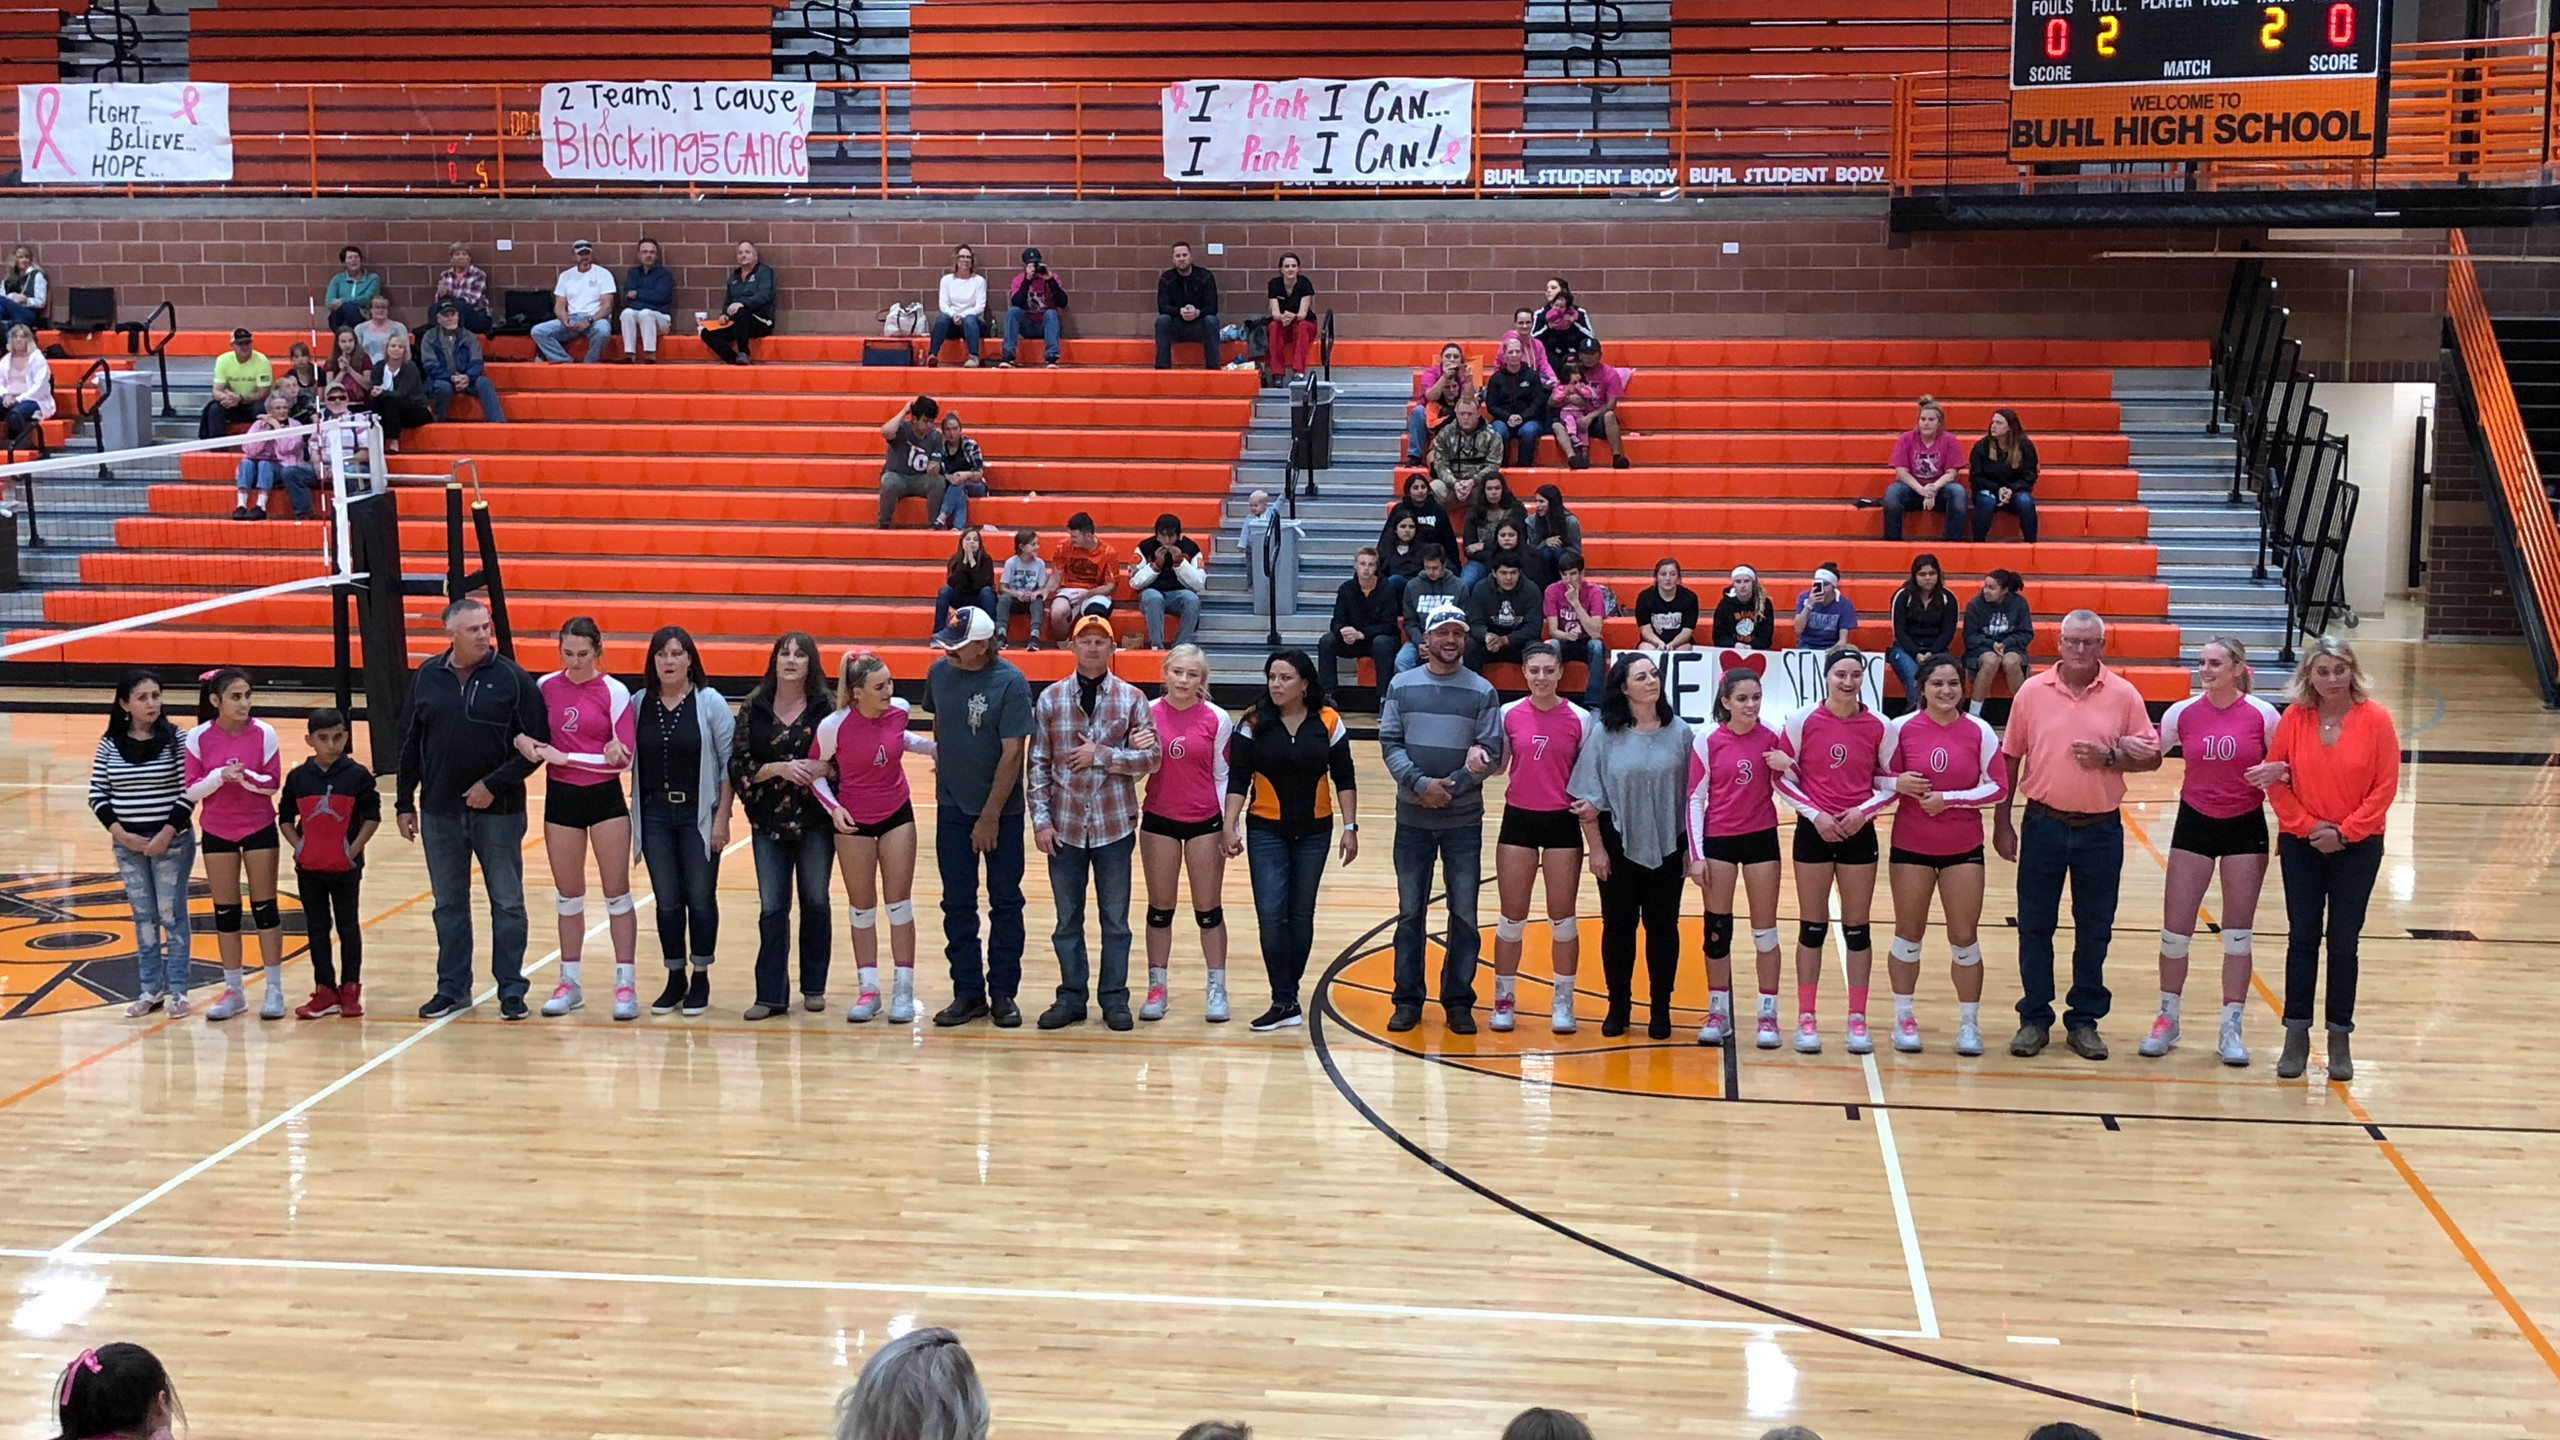 Senior Girls stand with their parents as they get recognized for their last home game. They are wearing their pink jerseys to support cancer awareness.